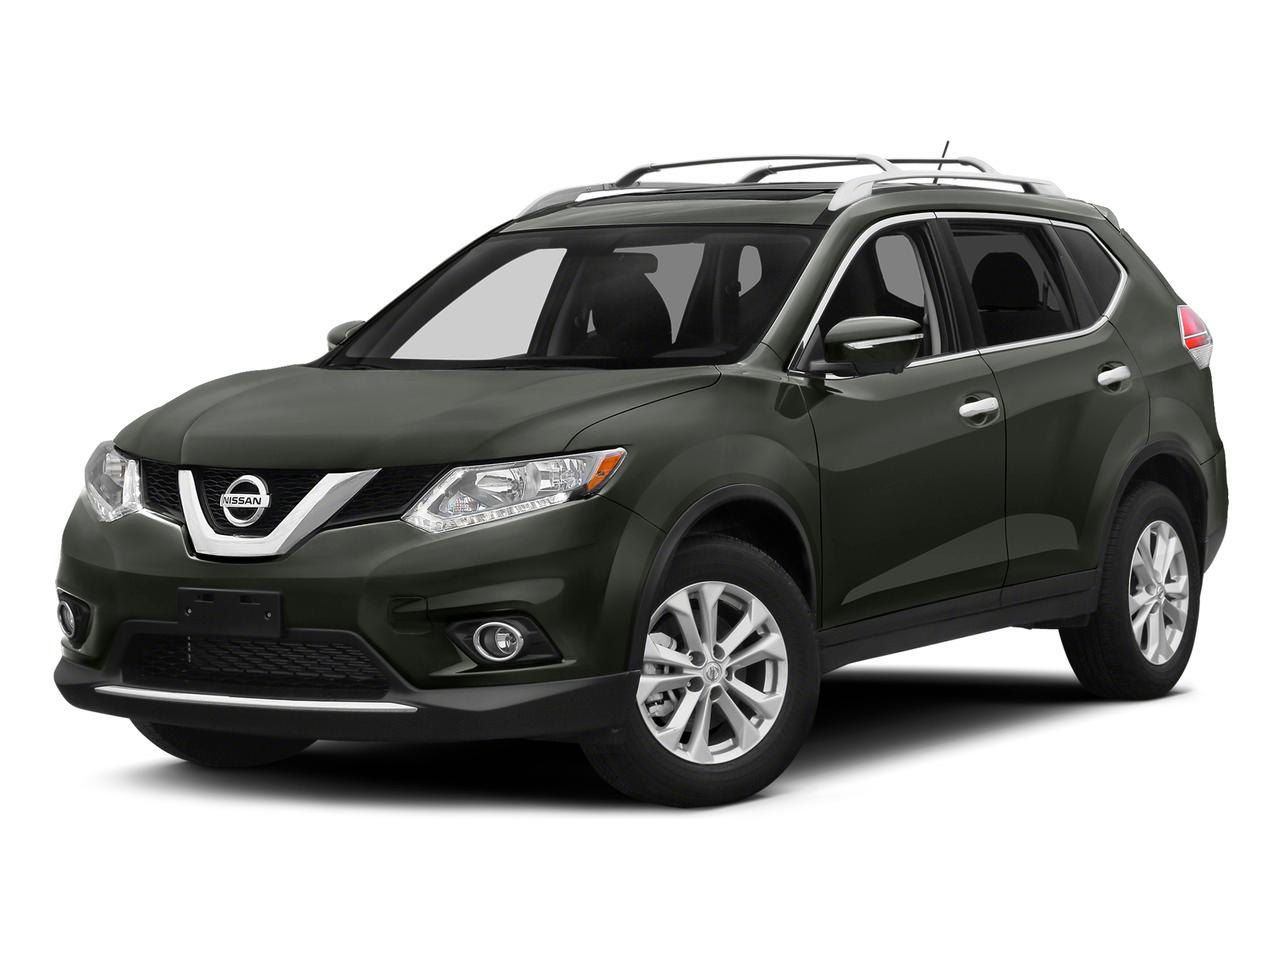 2015 Nissan Rogue Vehicle Photo in Jenkintown, PA 19046